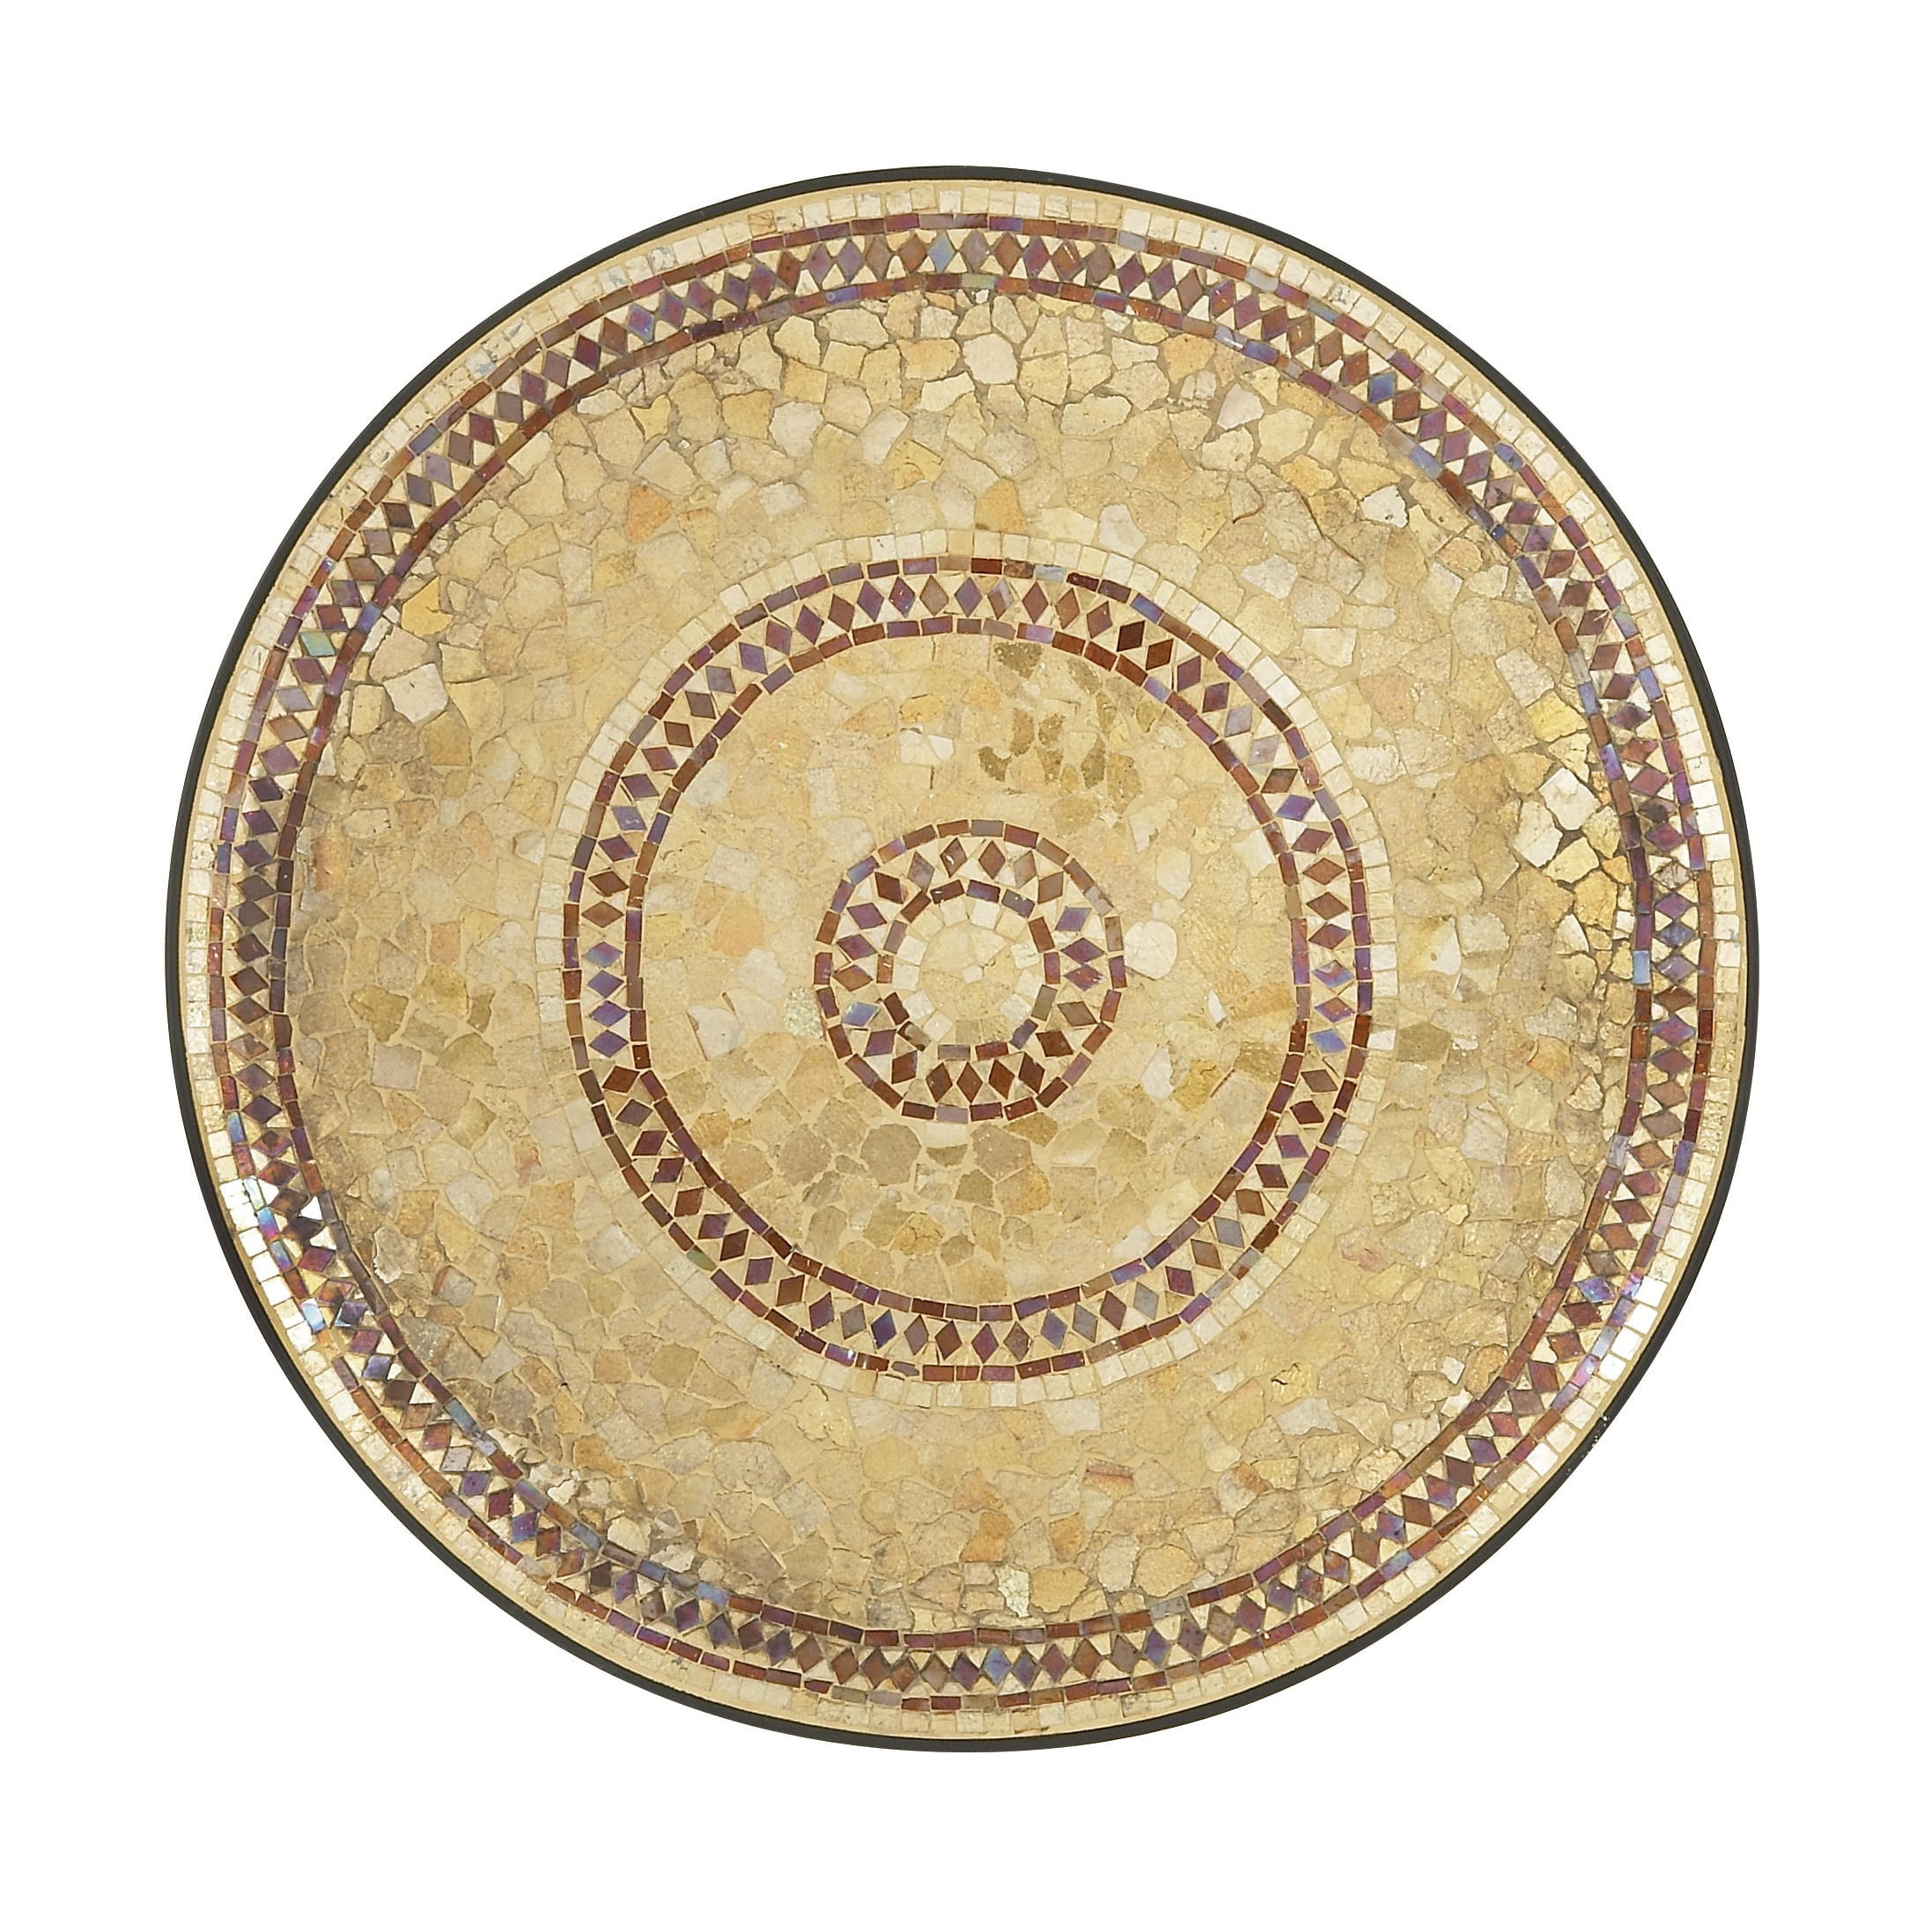 Studio 350 Brown Metal Circular Mosaic Wall Platter (Enti...